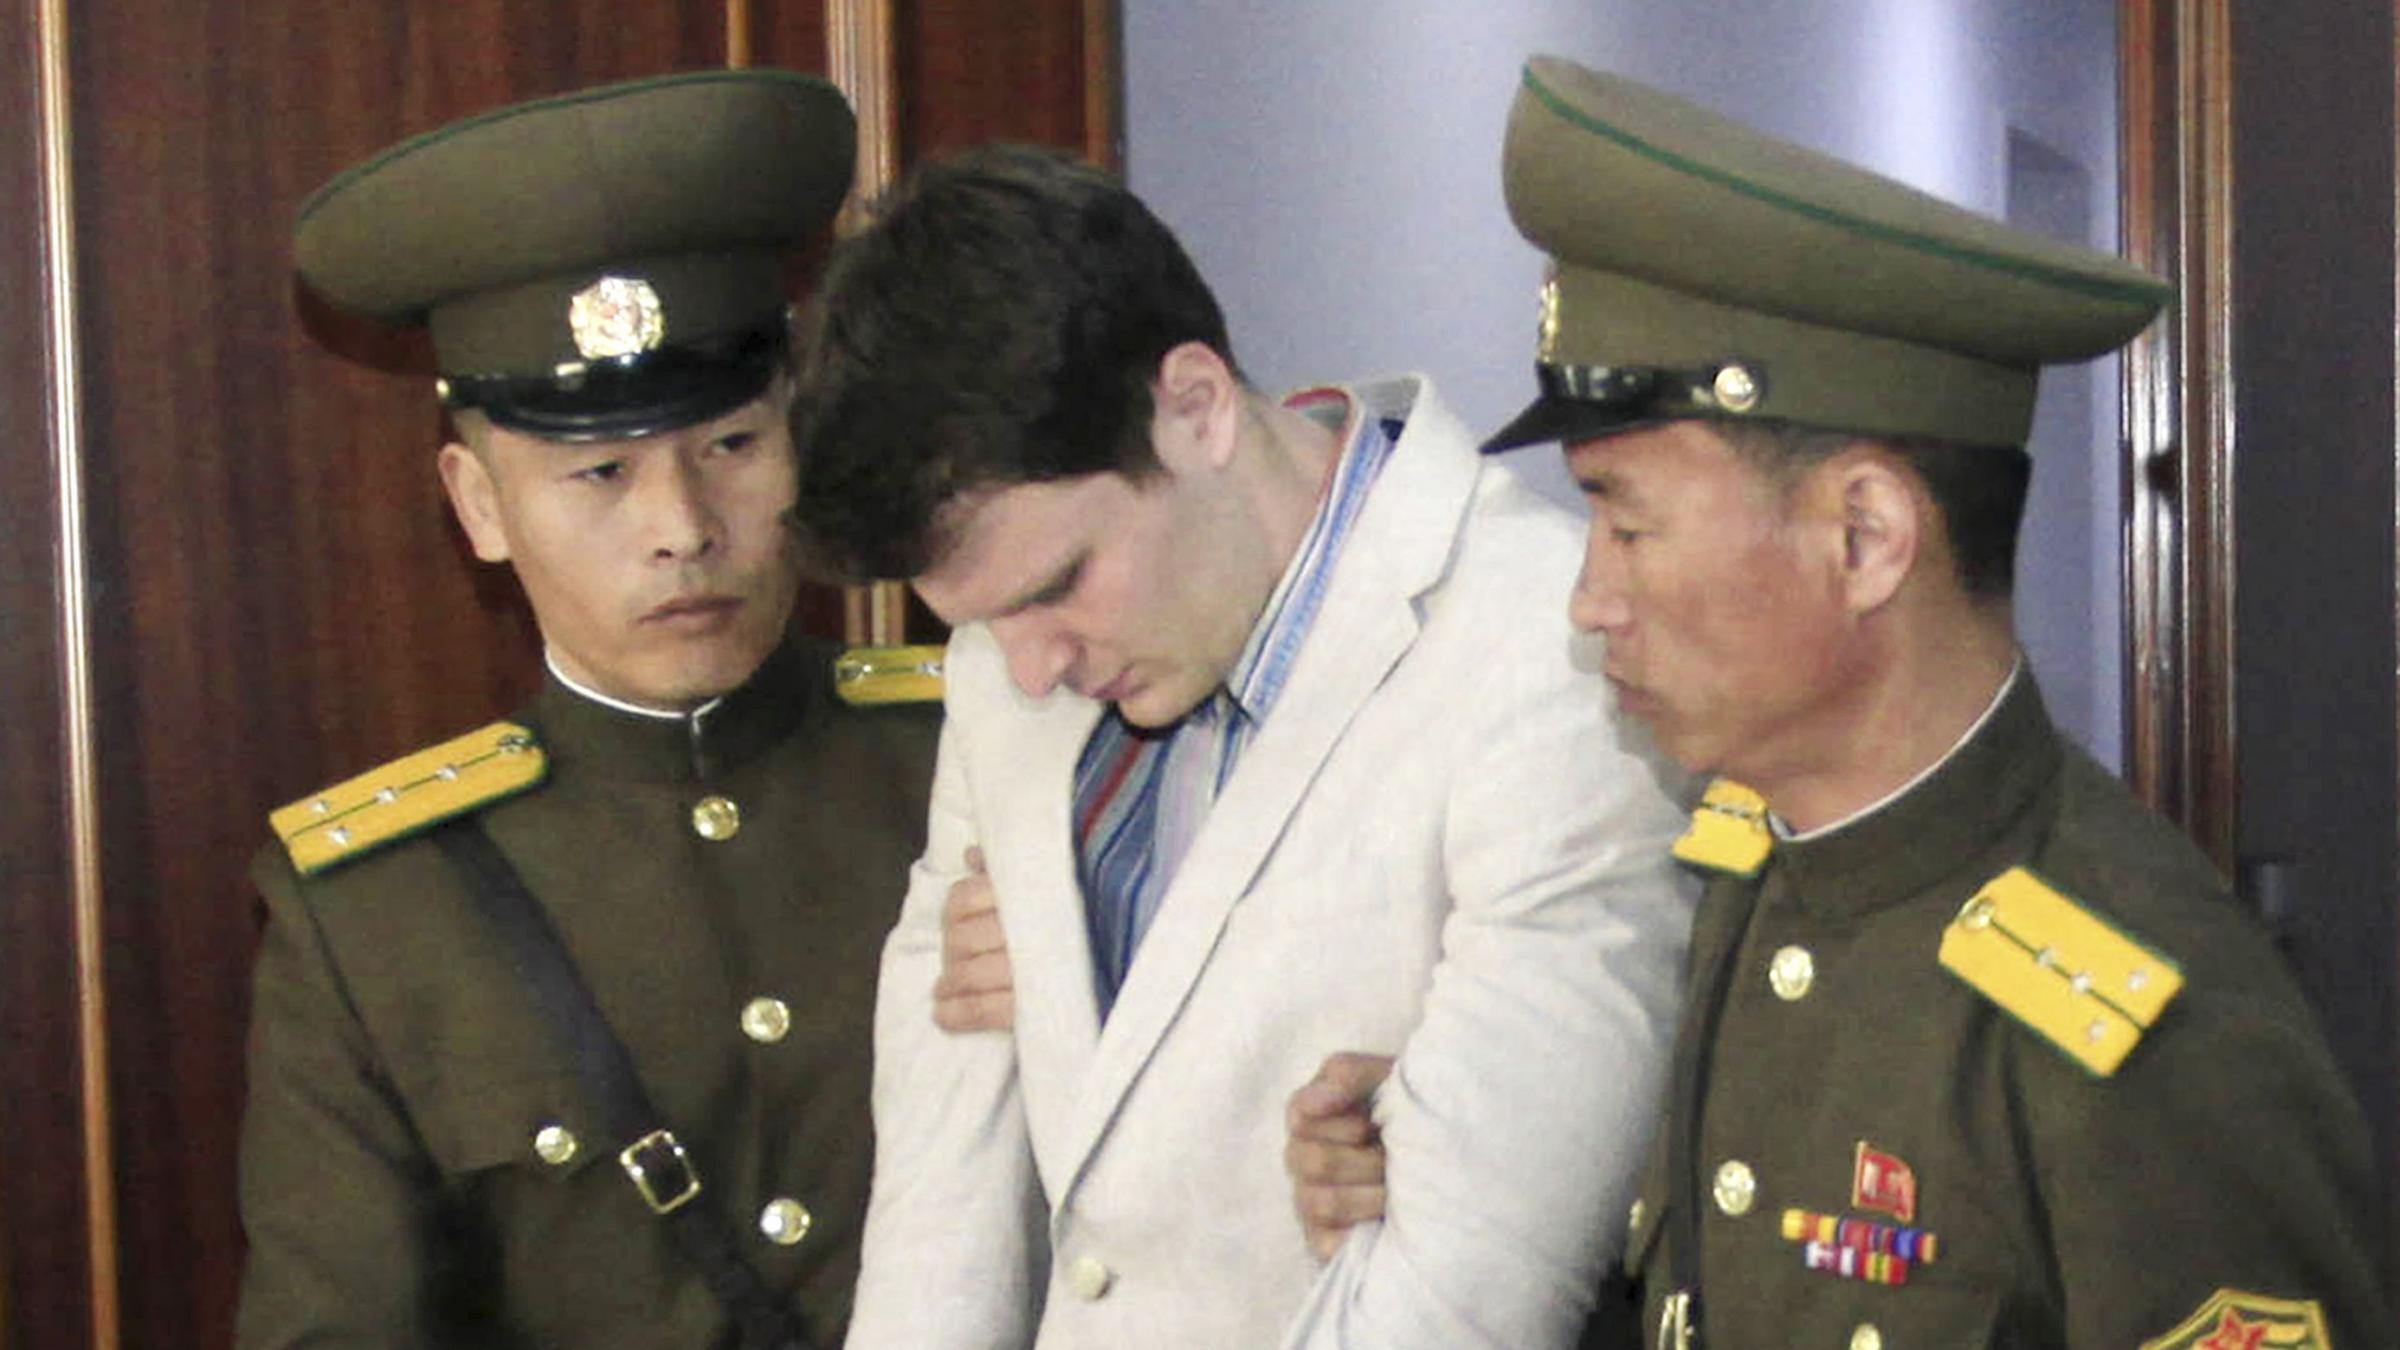 Cincinnati doctors share Otto Warmbier's condition